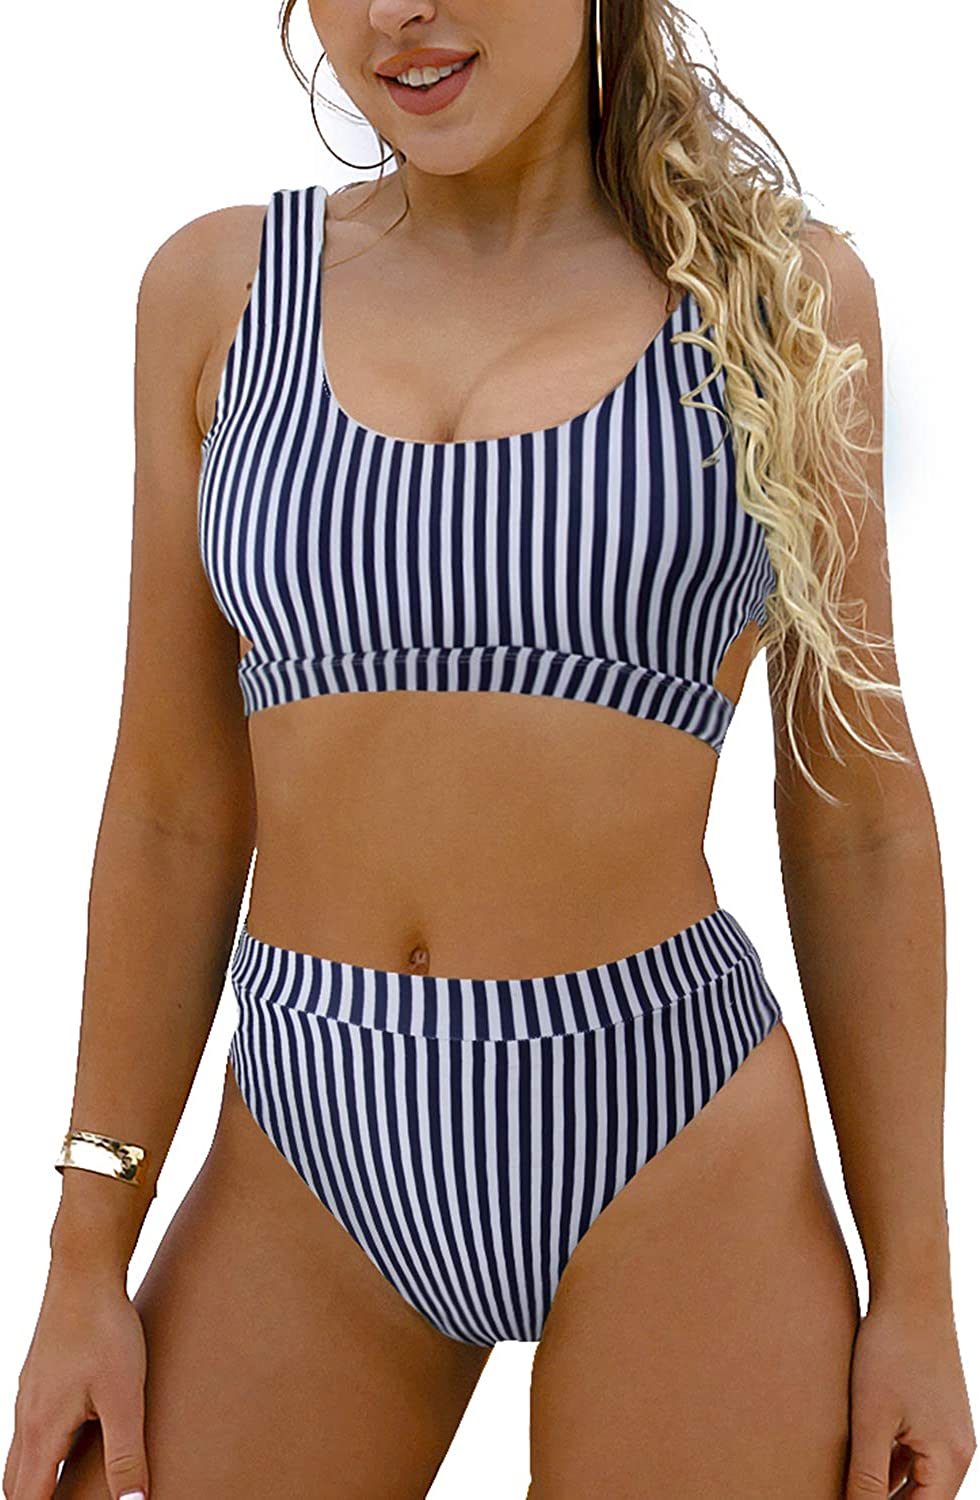 Blooming Jelly Women's High Waisted Swimsuit Crop Top Cut Out Two Piece Cheeky High Rise Bathing Suit Bikini